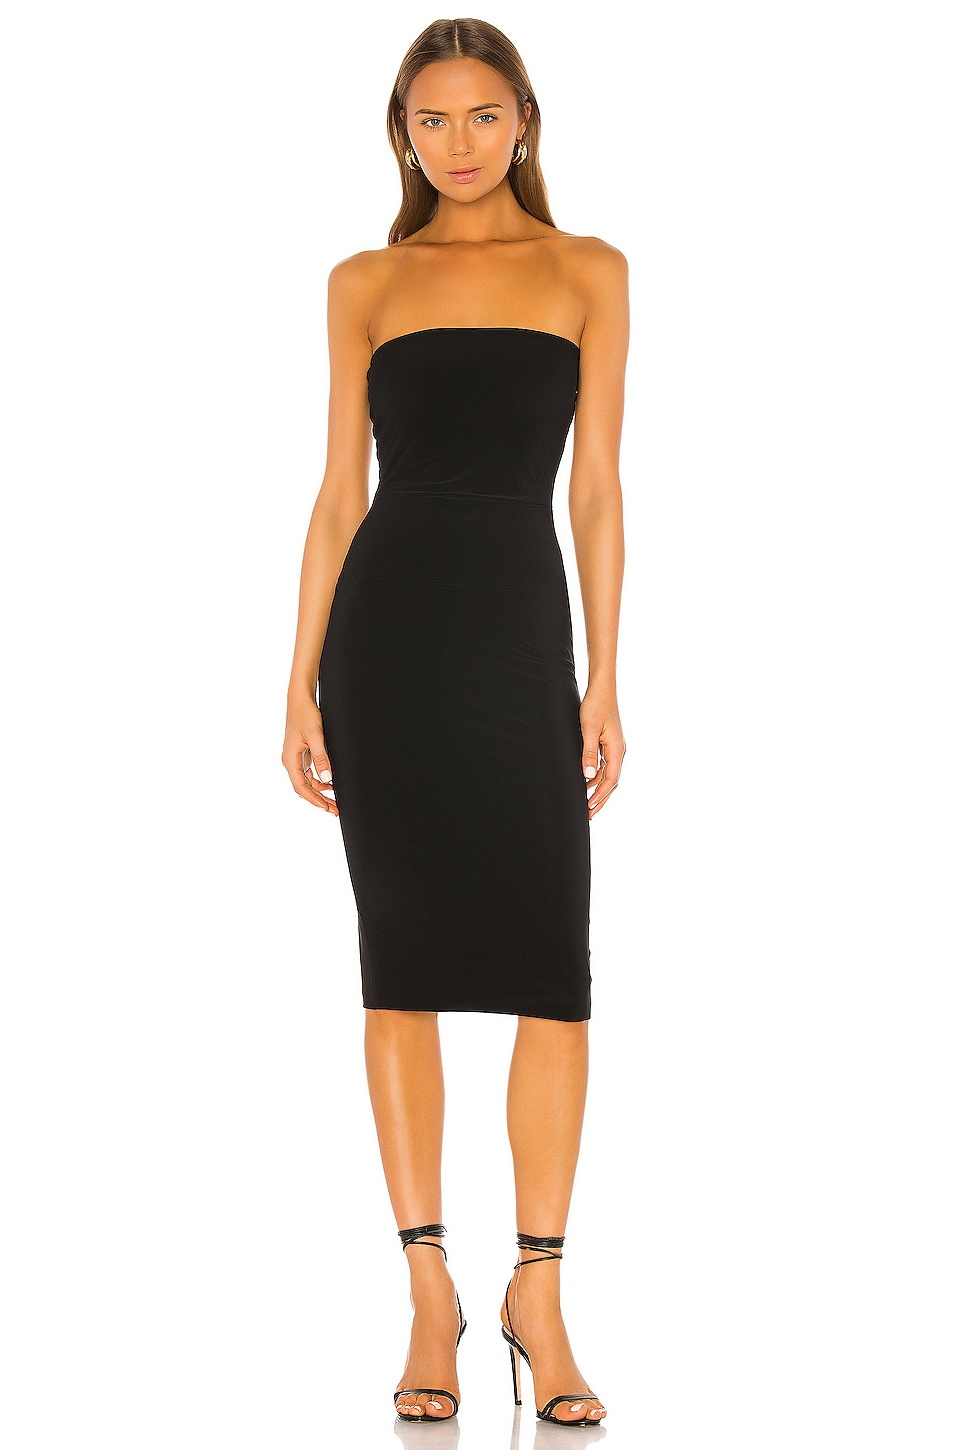 Strapless Dress                   Norma Kamali                                                                                                                             CA$ 163.47 2